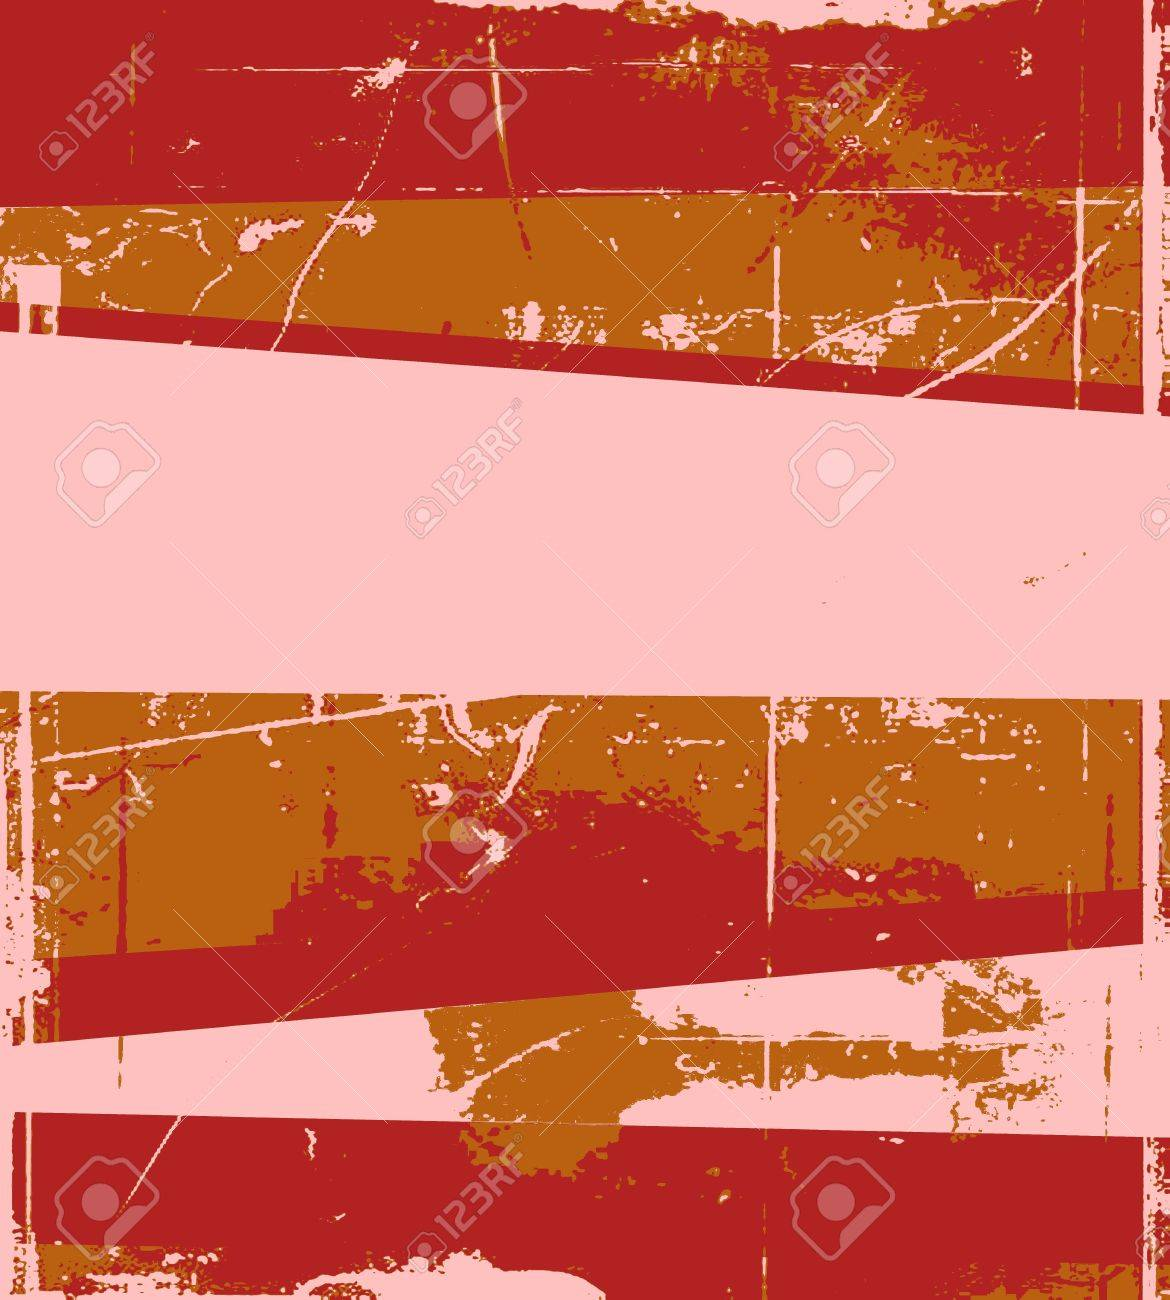 Red retro grunge background Stock Photo - 14510977